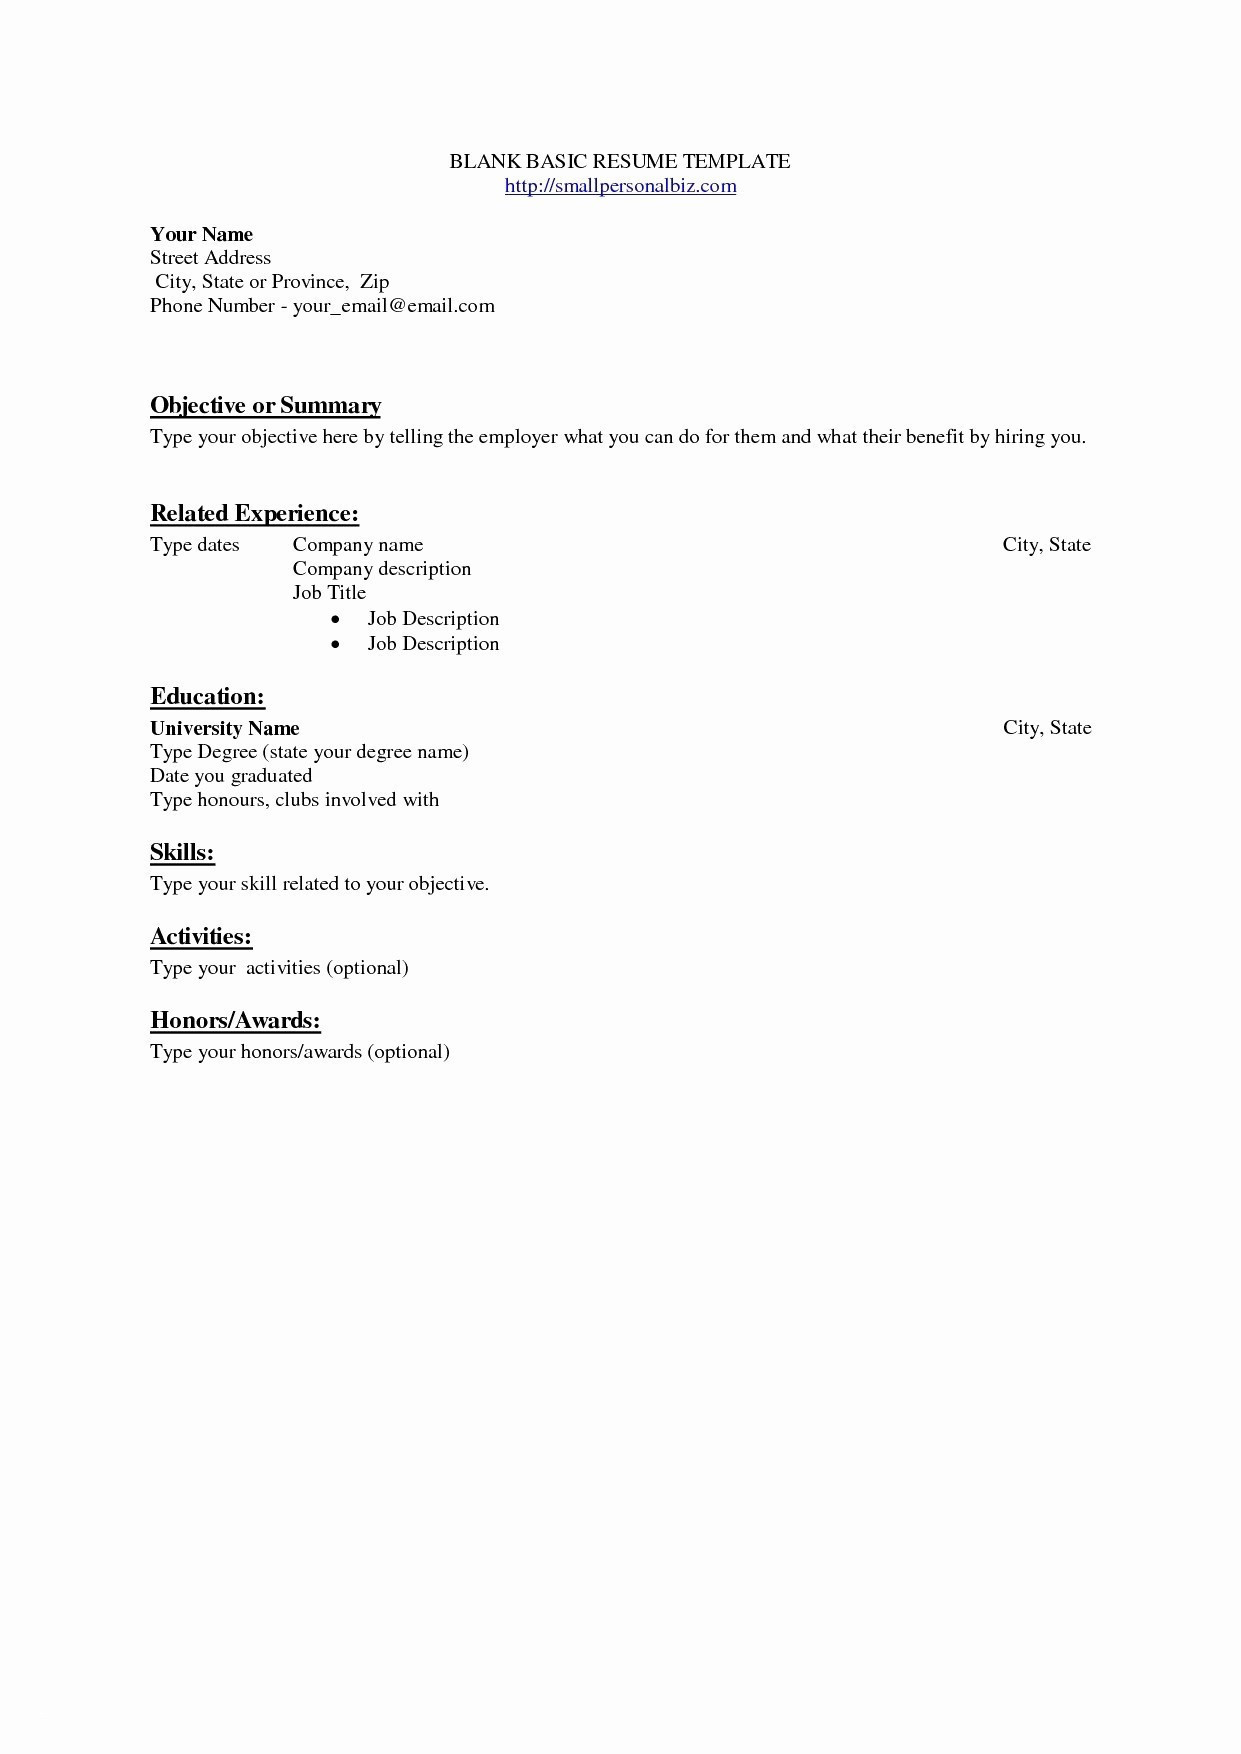 005 Template Ideas Blank Basic Resume Templates Beautiful College - Free Printable College Degrees